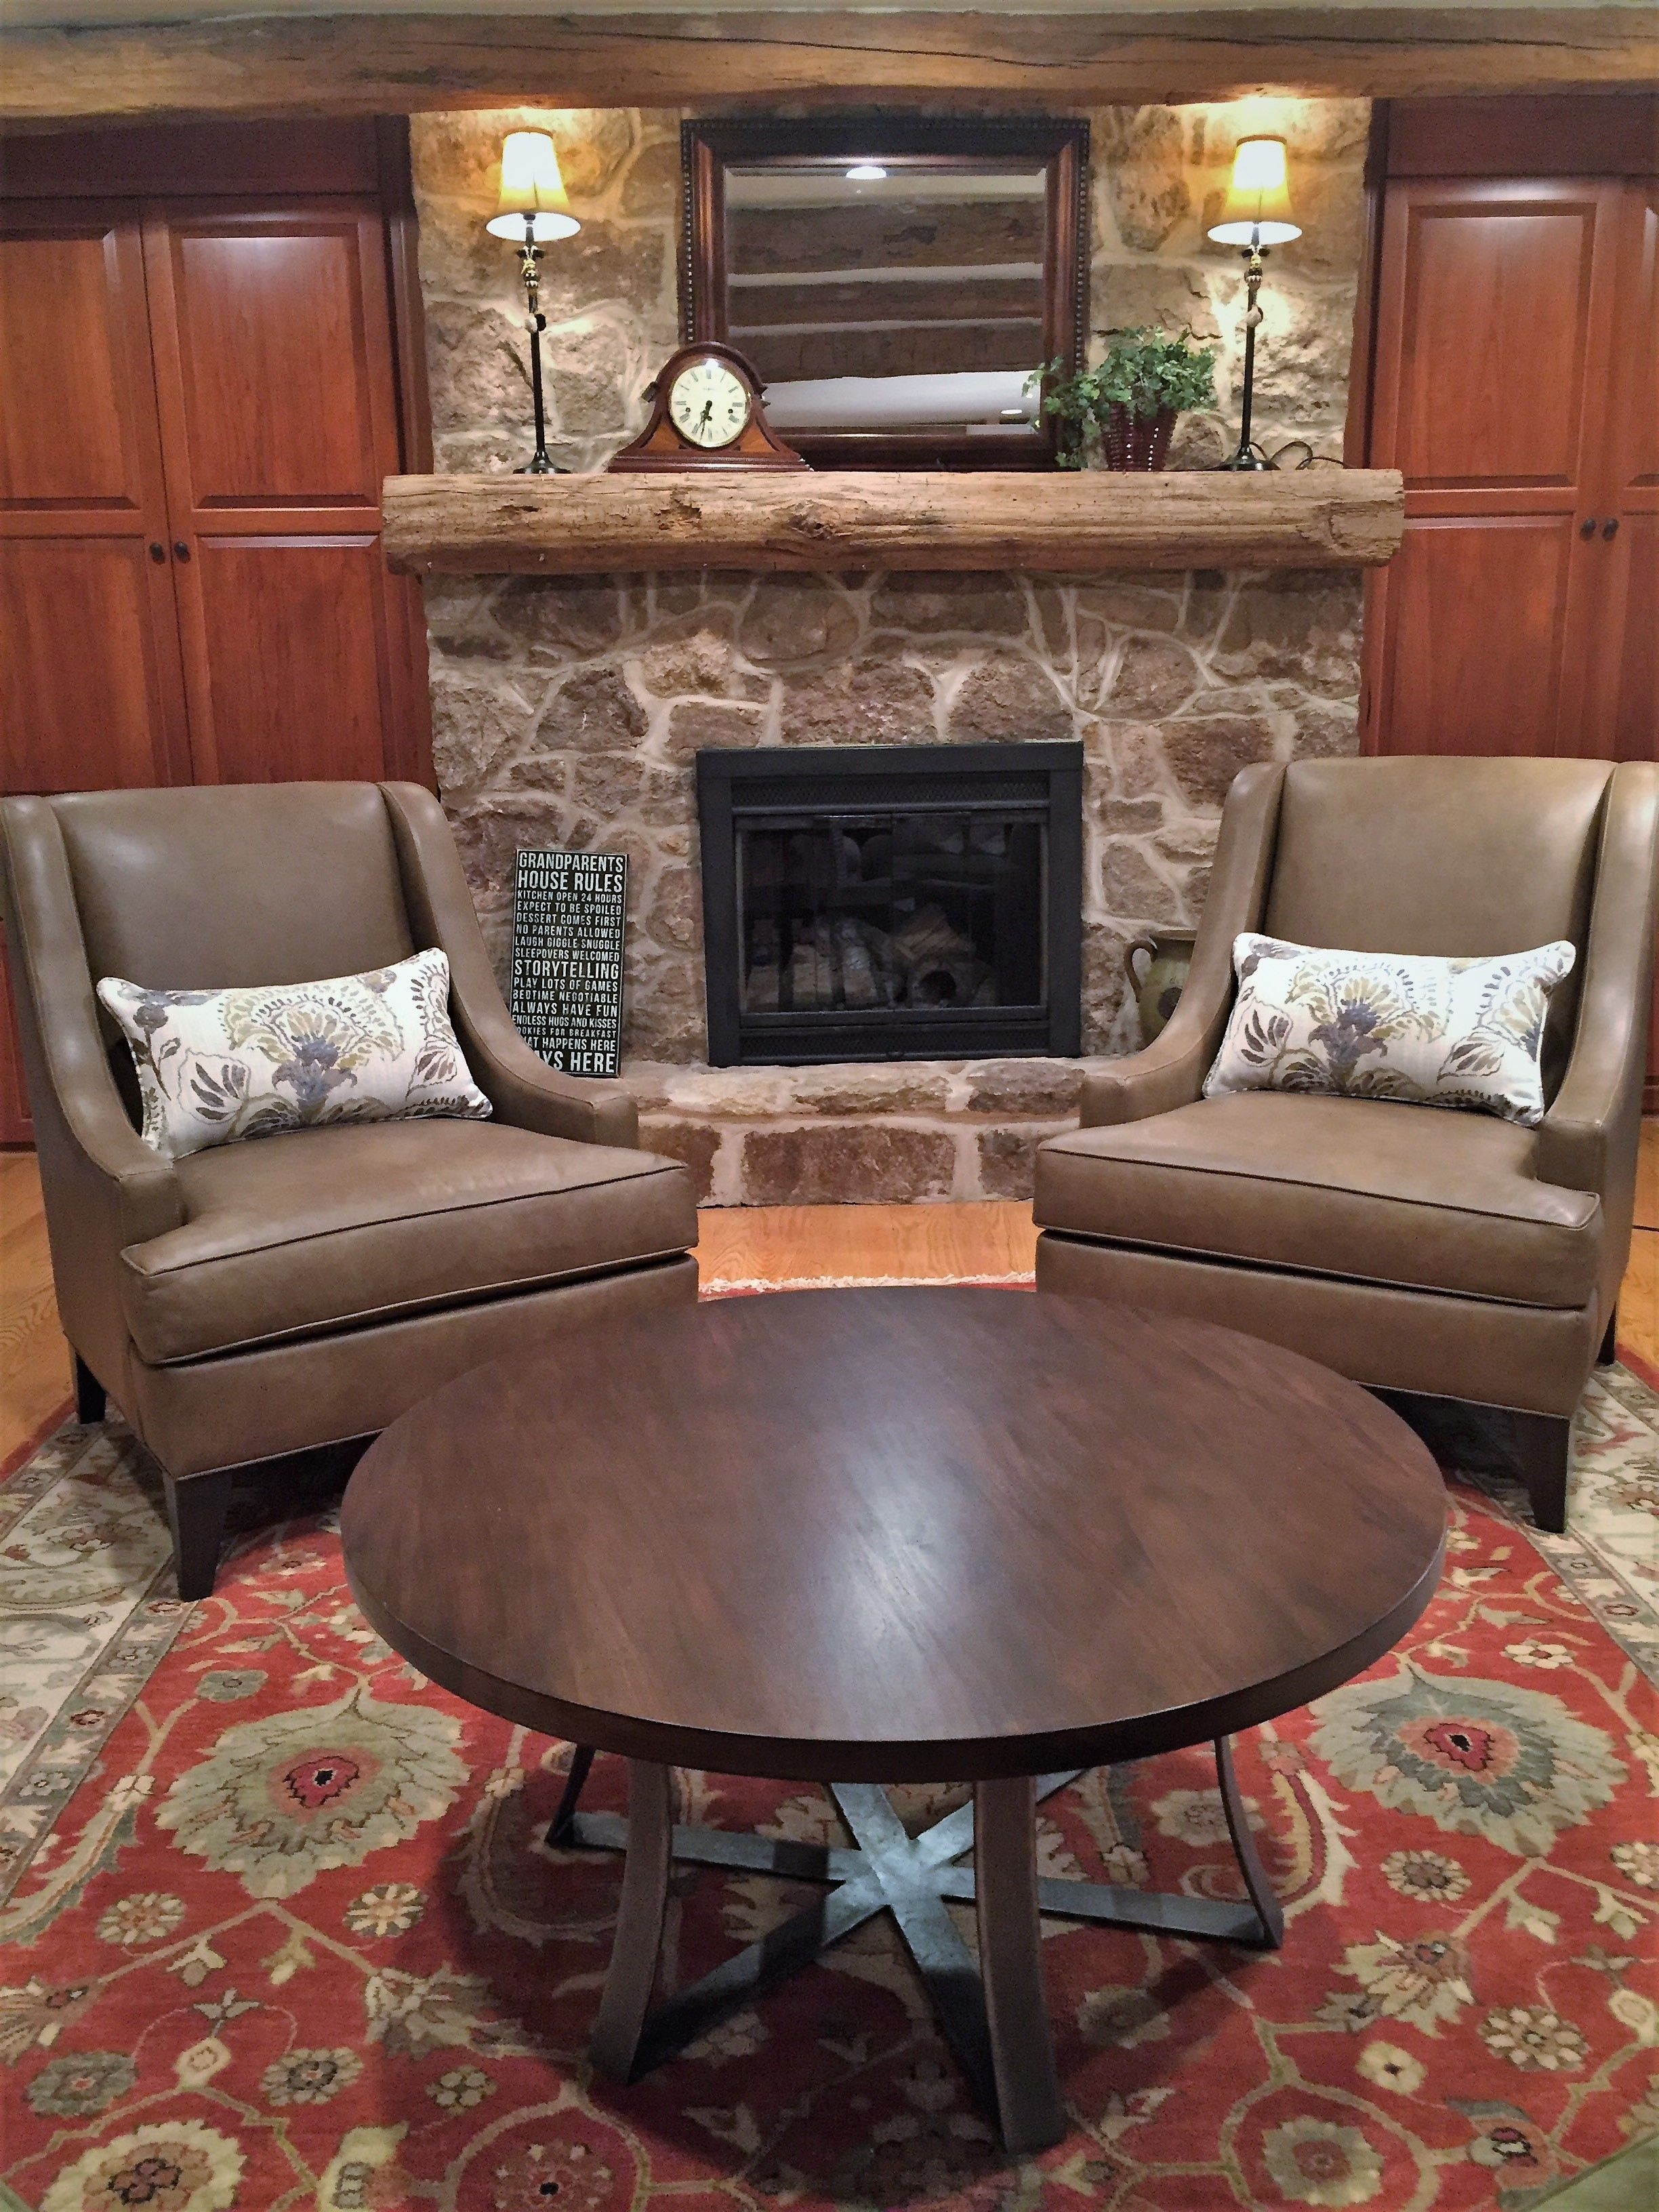 Fireplace Seating Floor Cushions Living Room Fireplace Seating Banquette Seating In Kitchen